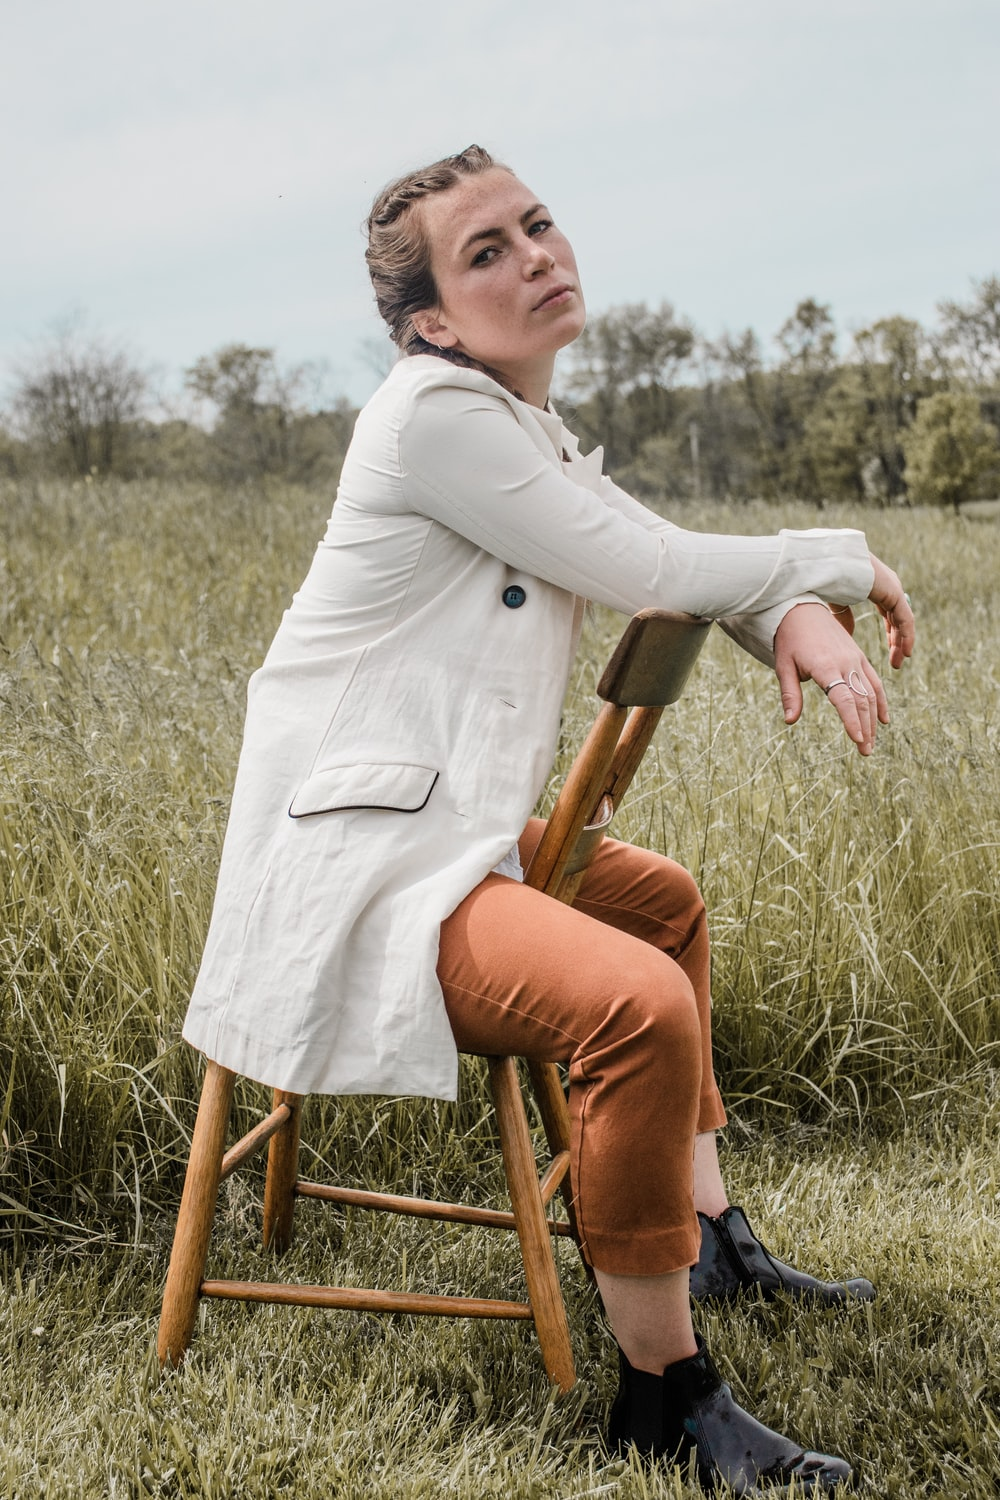 woman in white long sleeve shirt and brown pants sitting on brown wooden seat